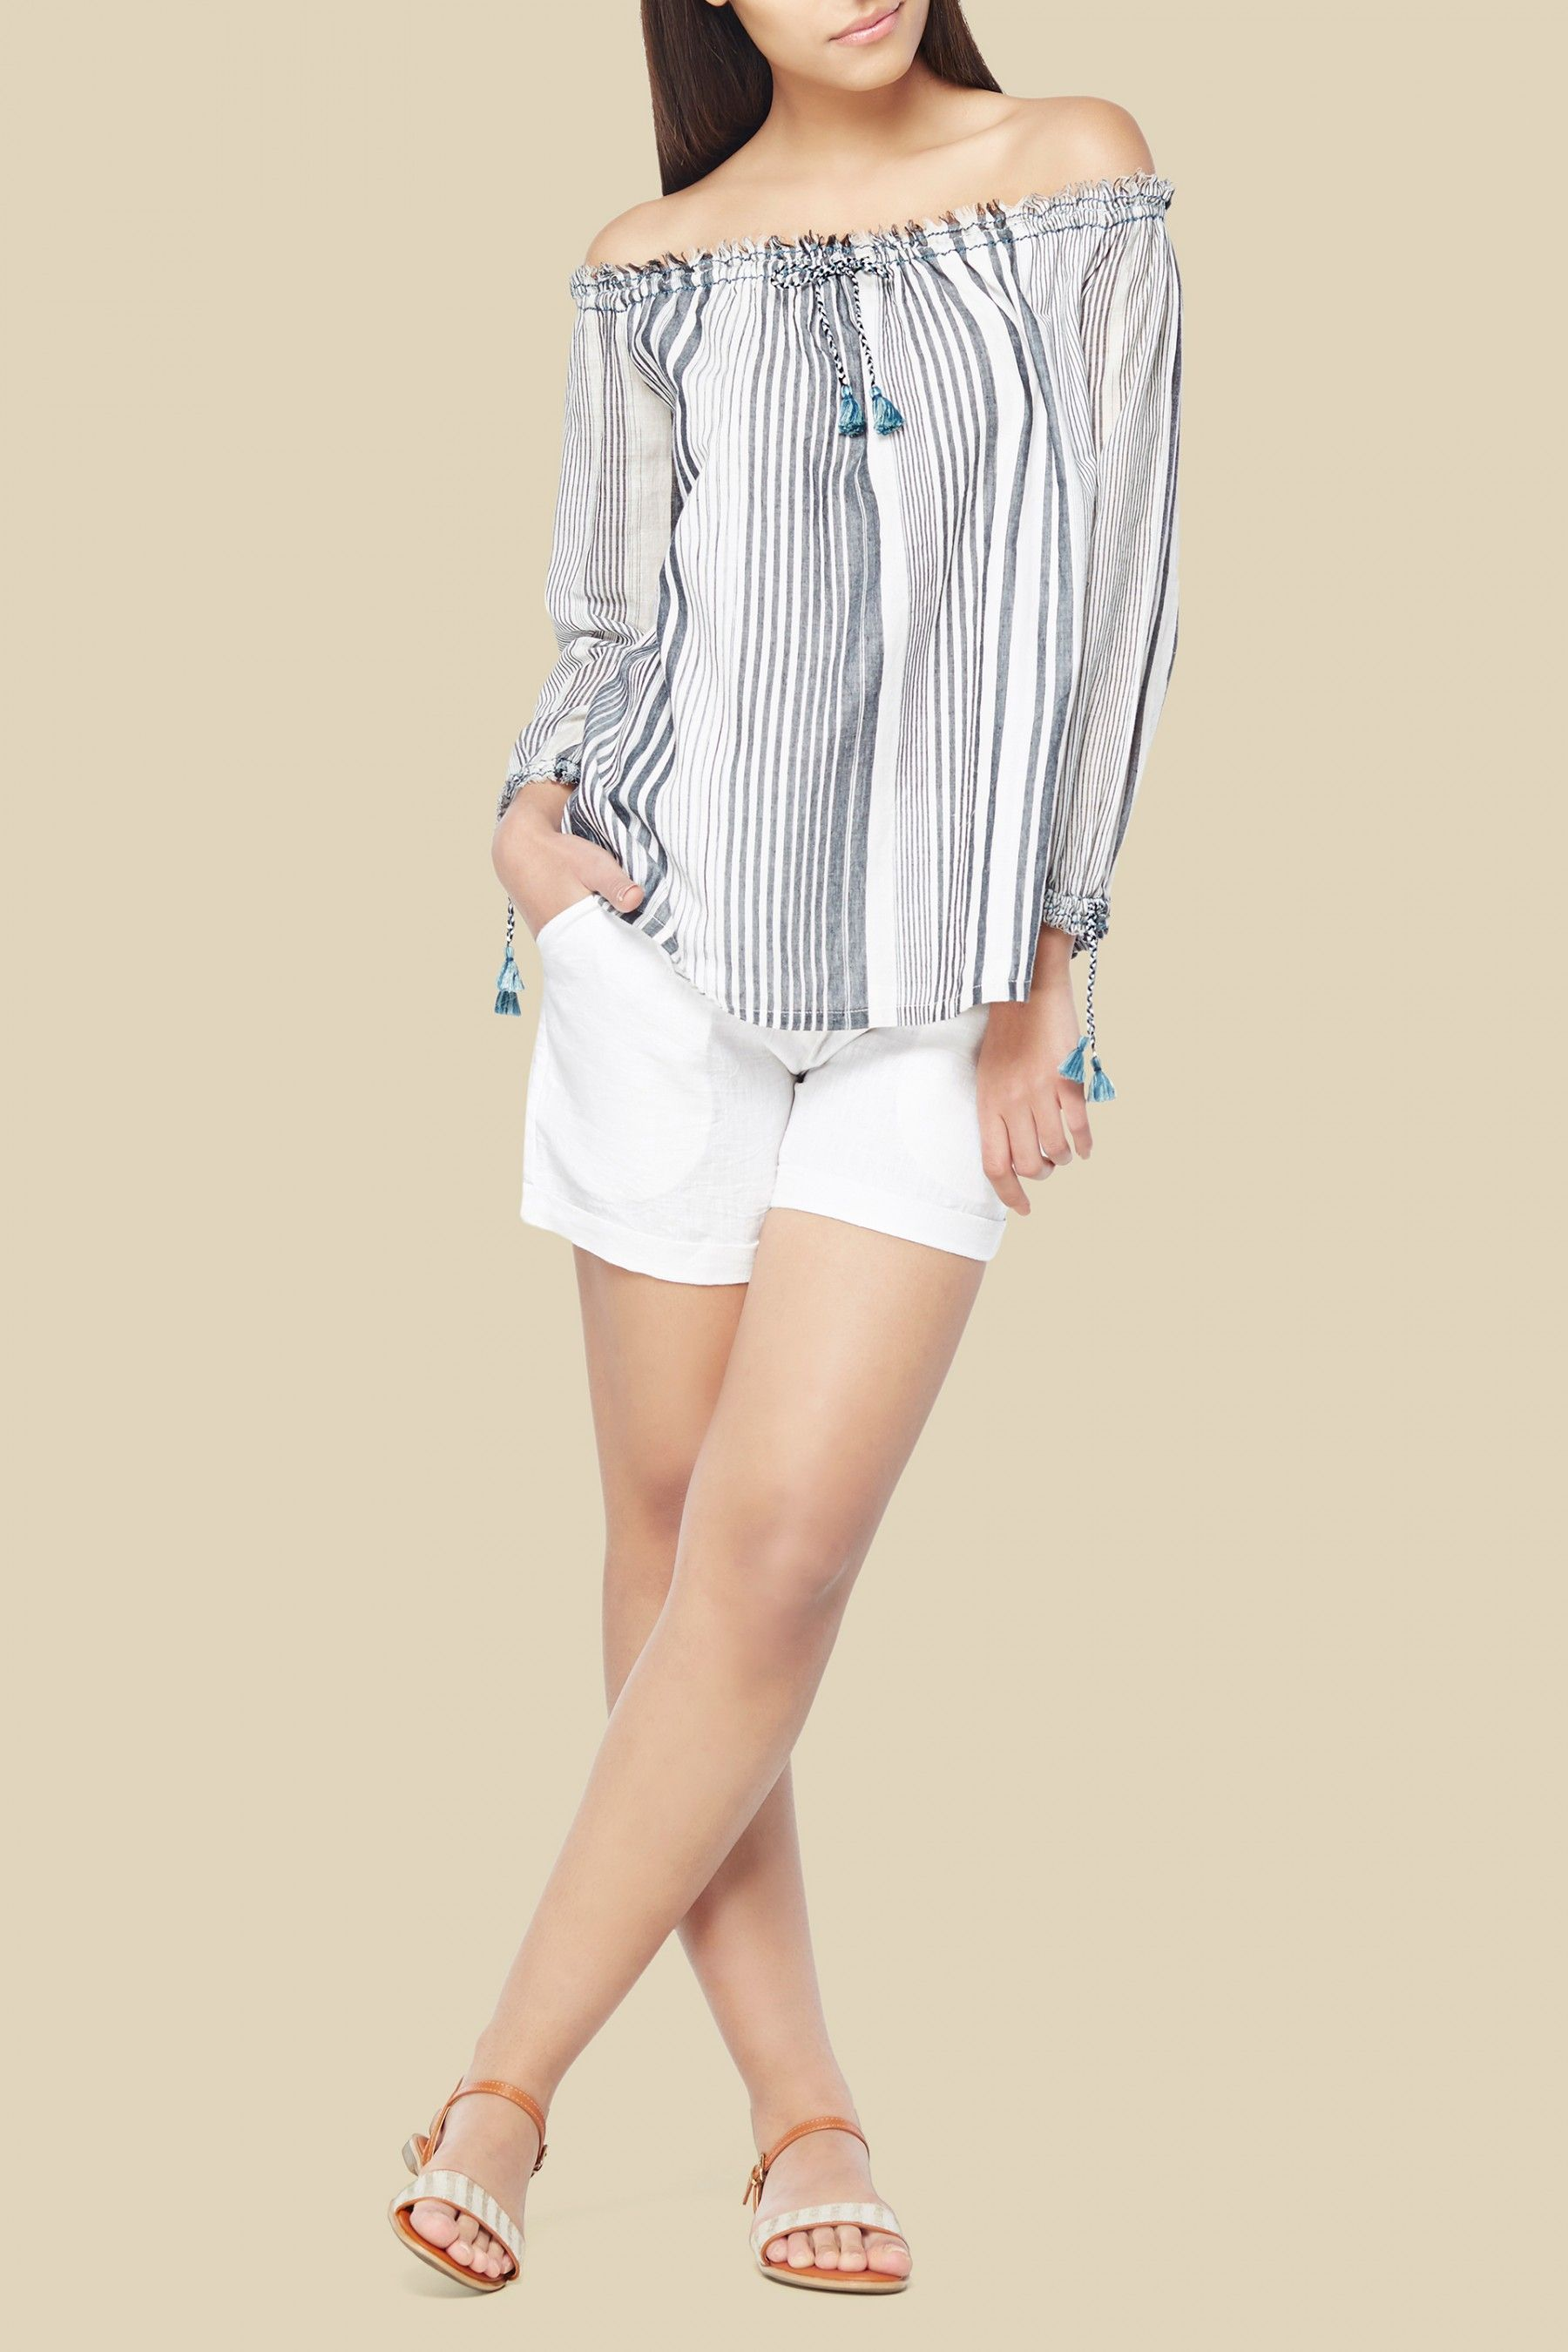 81a7ae8882ab8 A grey striped off-shoulder handwoven cotton top with full sleeves and tie- up blue tassel detailing on the front and on the elasticated cuffs.